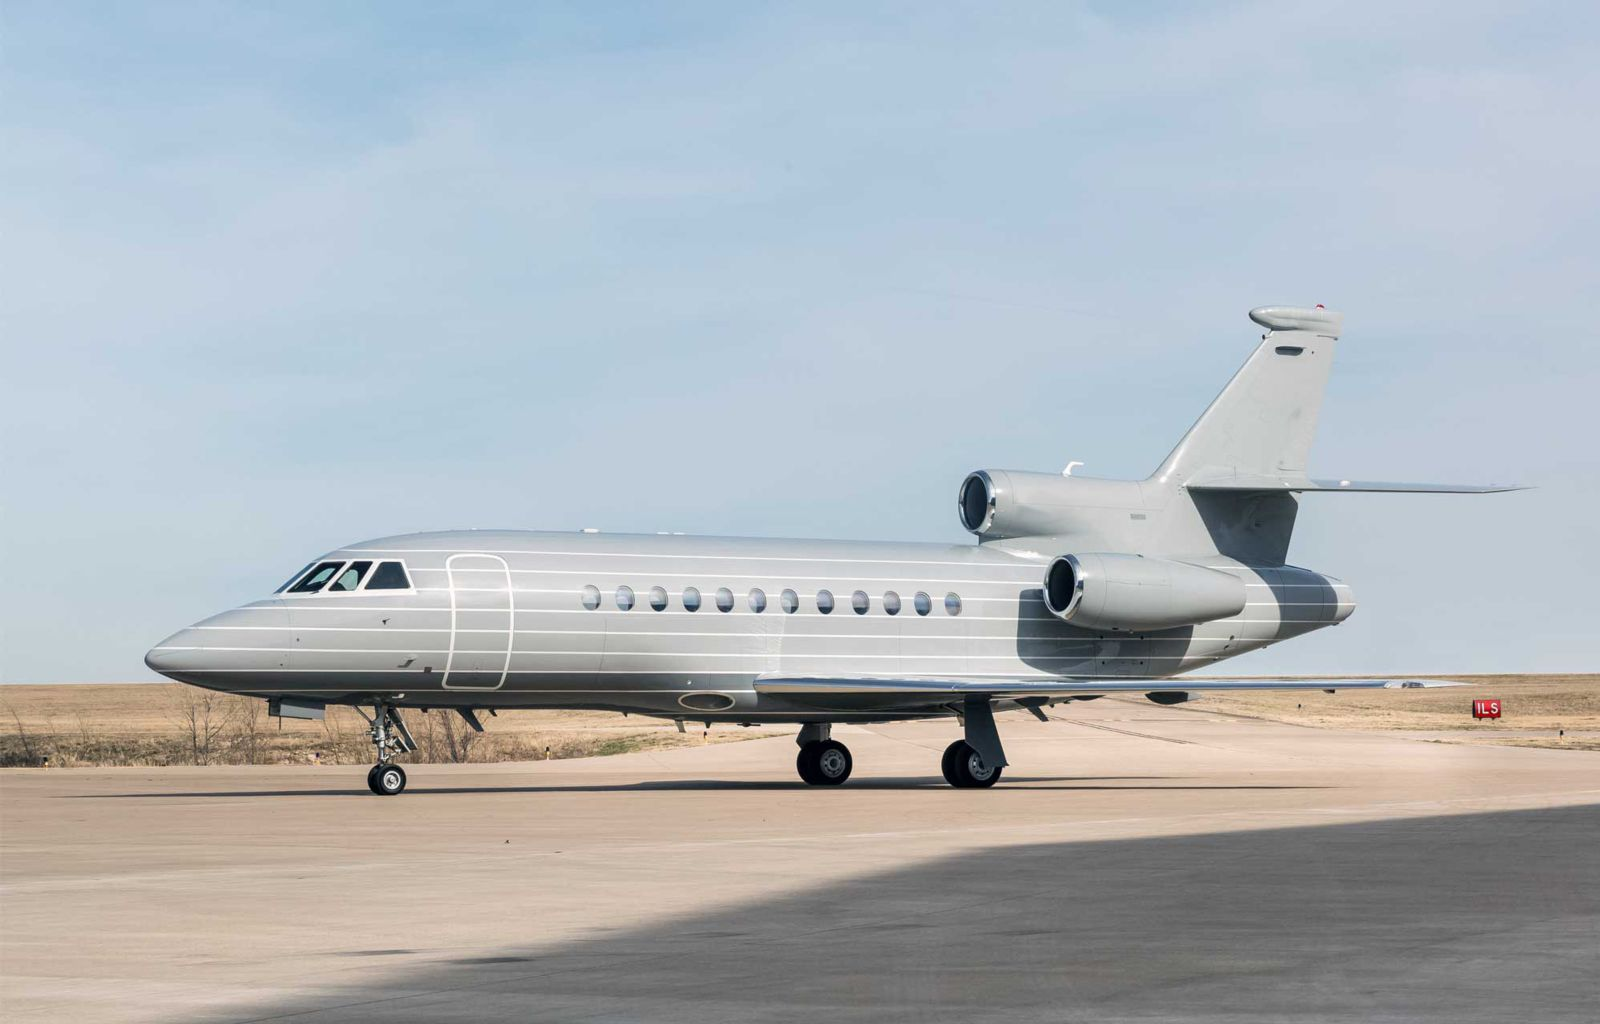 Related model: Dassault Falcon 900EX